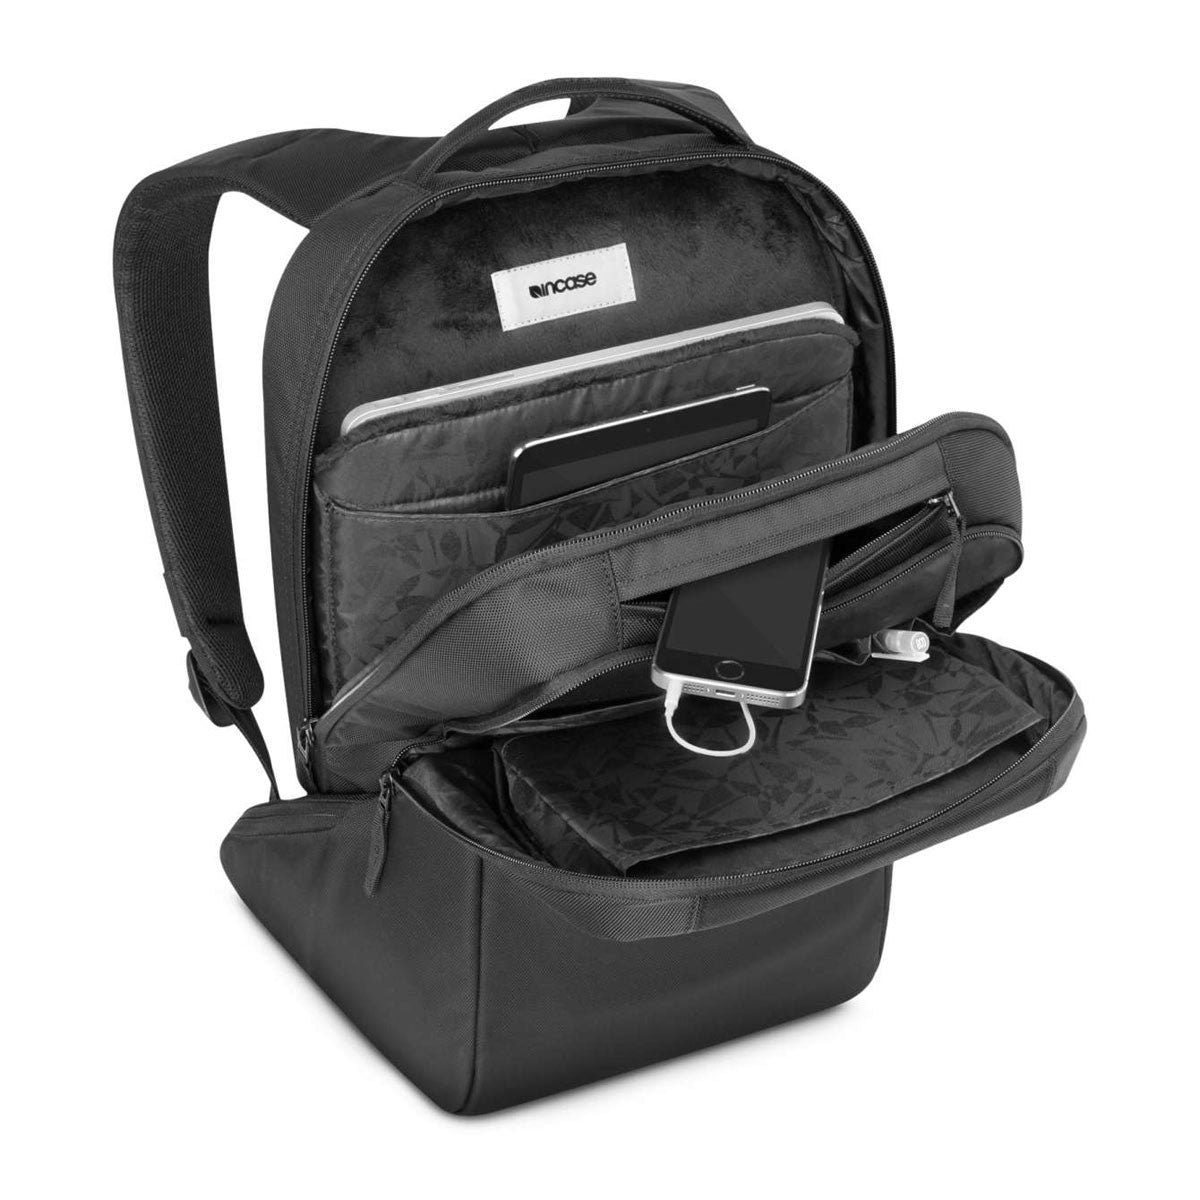 Incase: Icon Slim Backpack - Black (CL55535) open